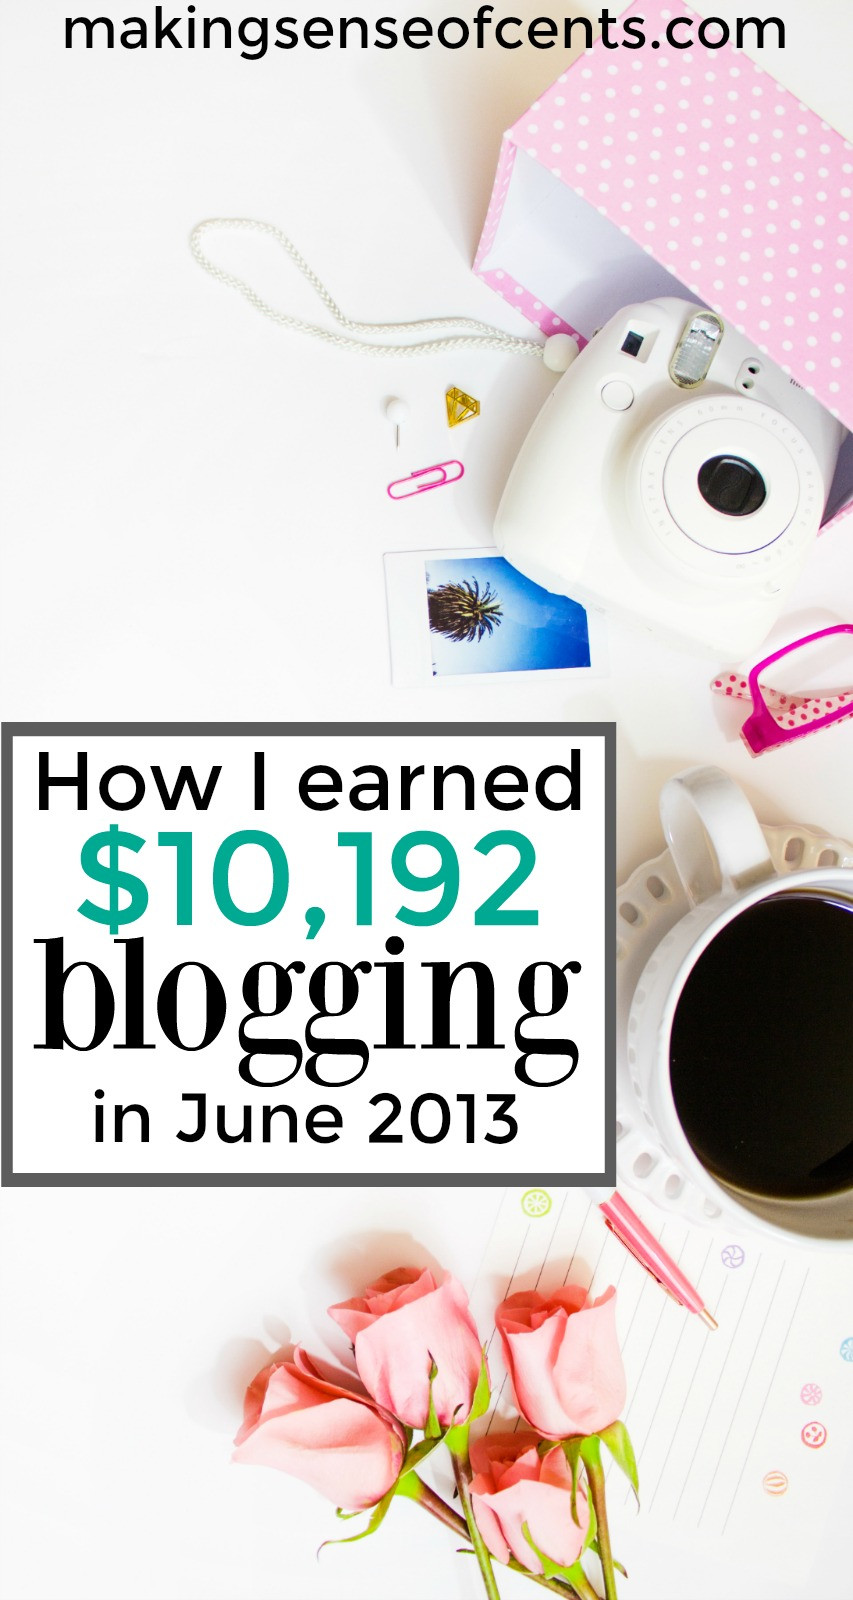 Find out how I made $10,192 from blogging in June.